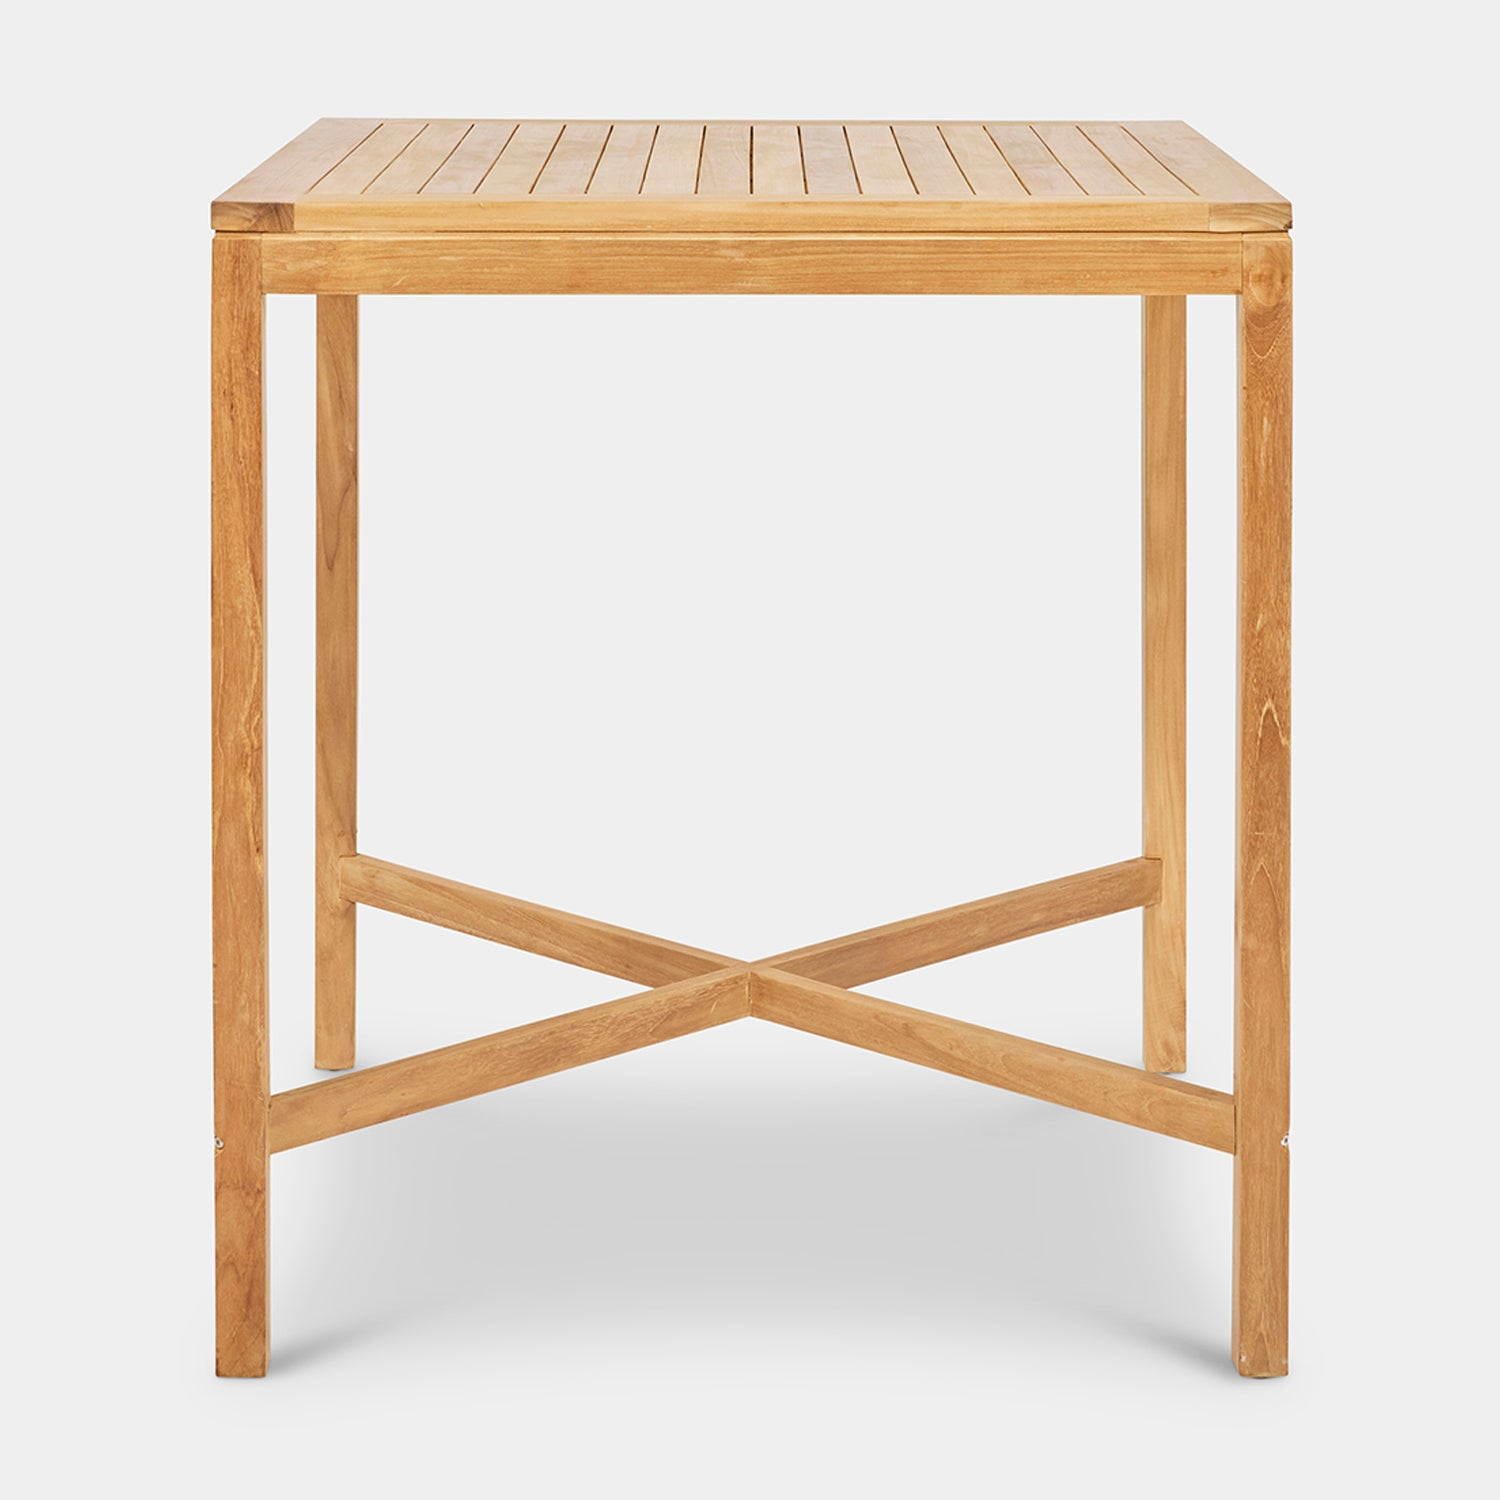 Teak-Bar-Table-Richmond-r1